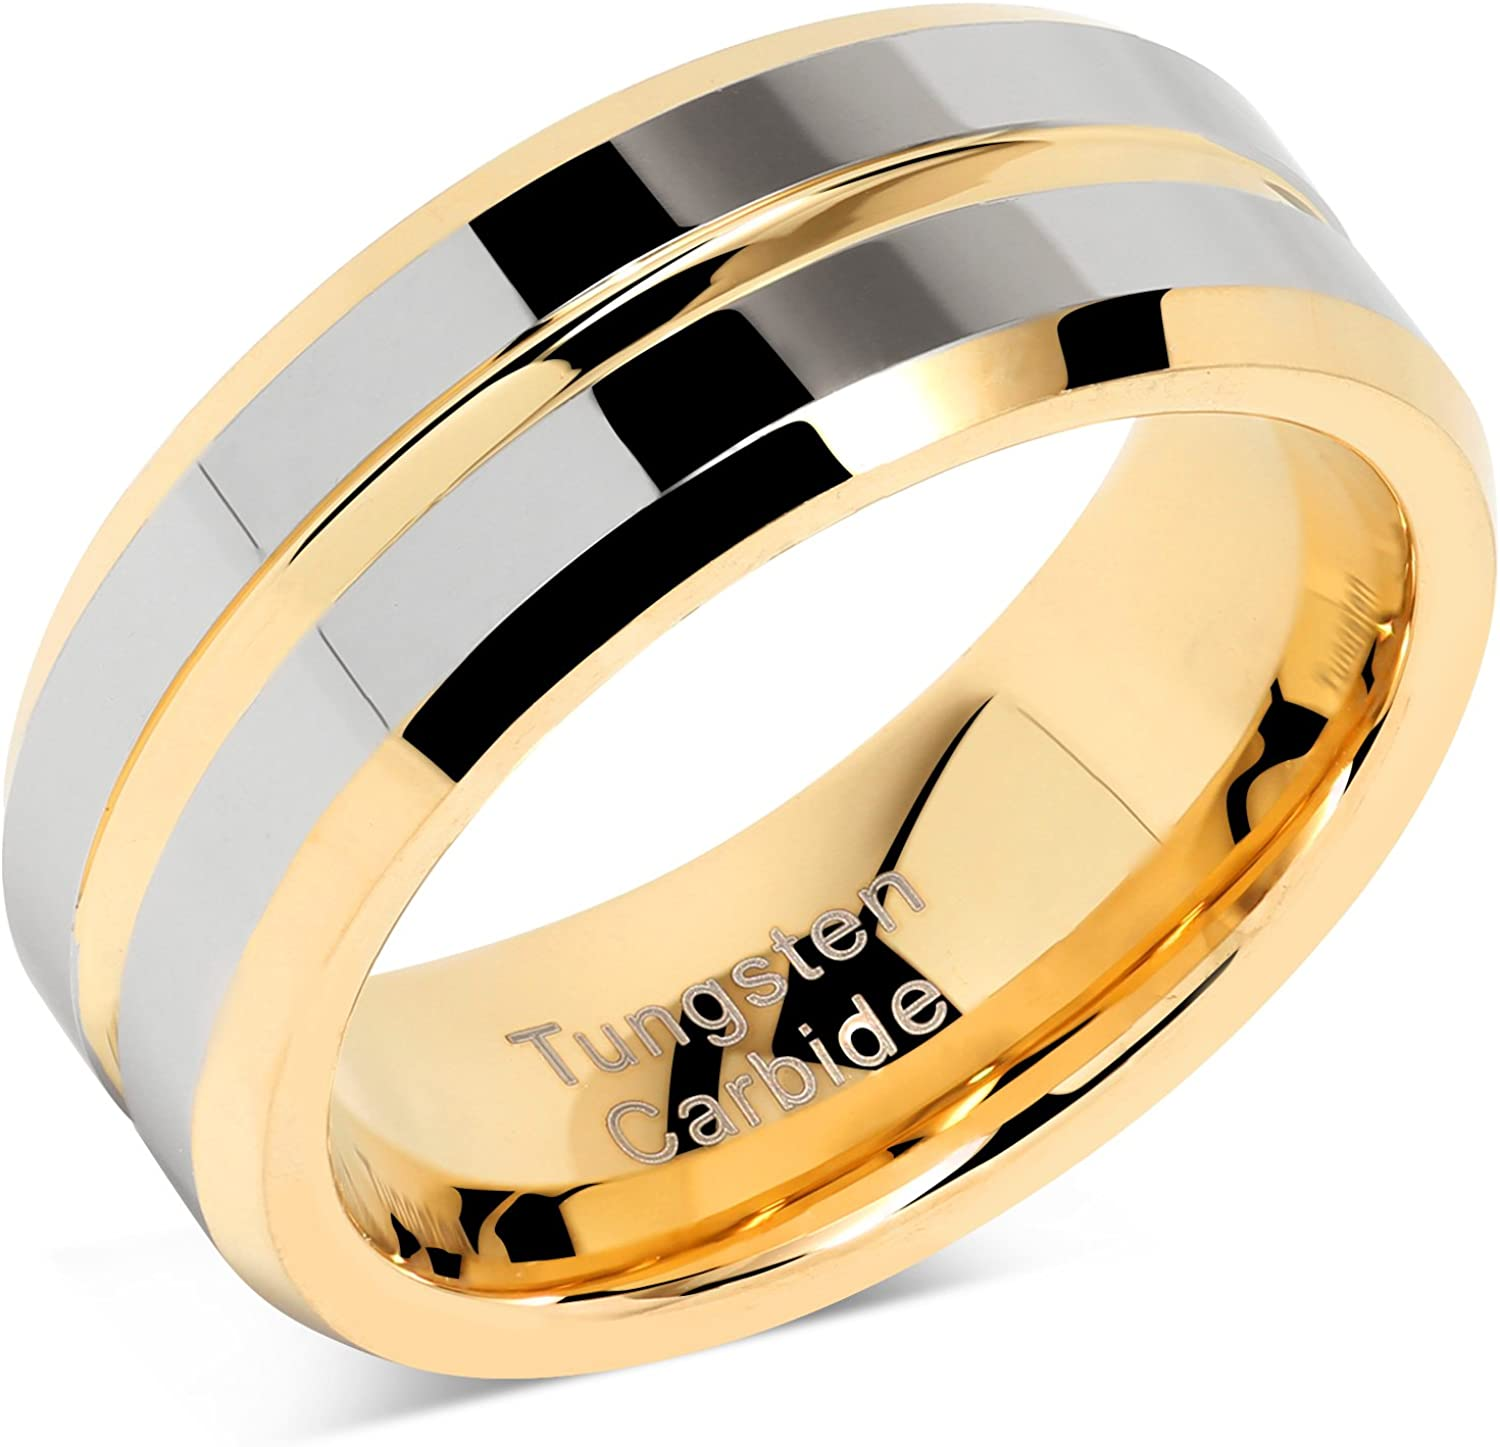 100S JEWELRY Tungsten Rings for Mens Wedding Bands Gold Silver Two Tone Grooved Center Line Size 6-16